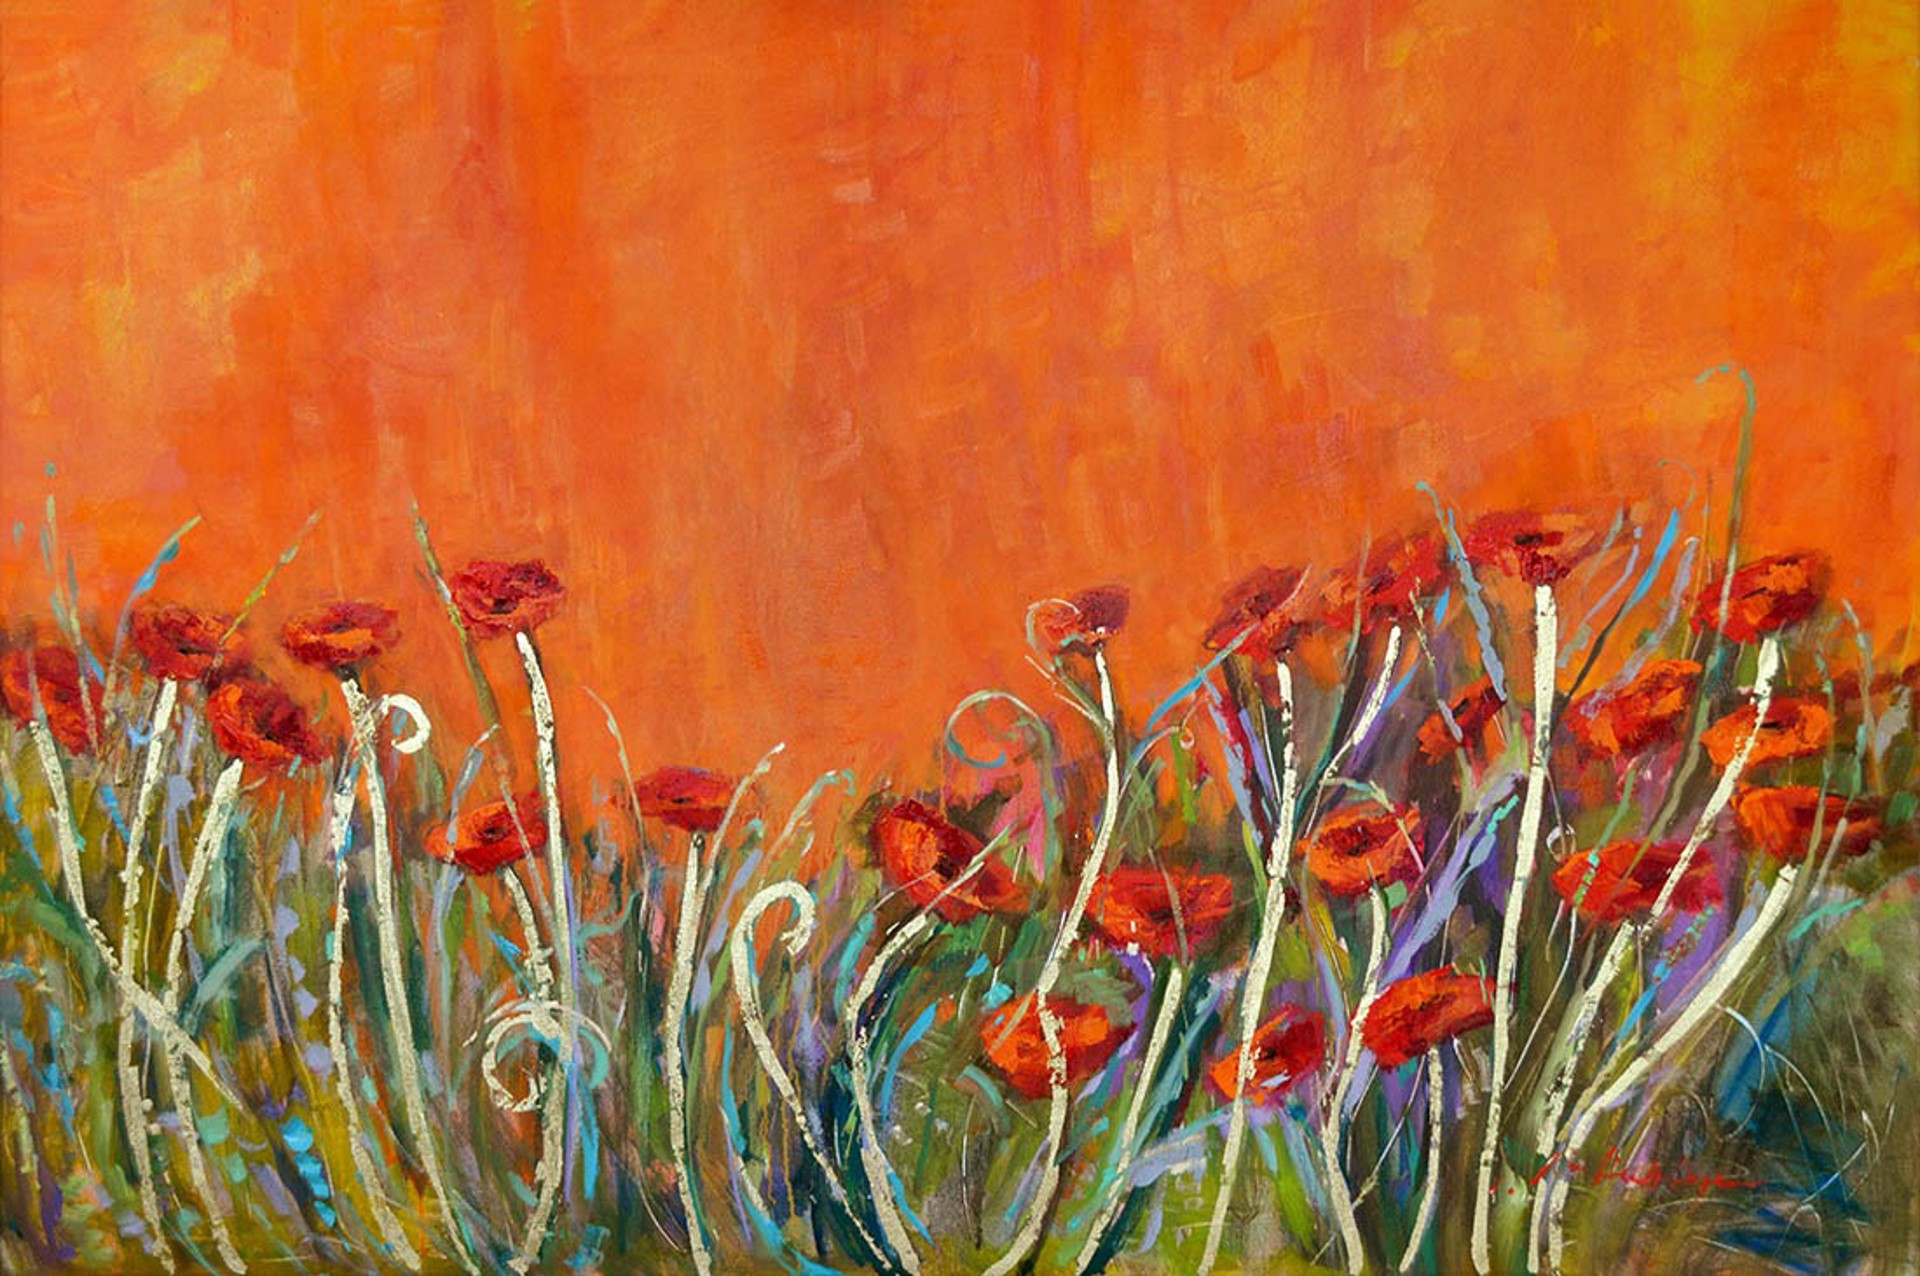 Glorious Poppies of Tuscany by Karen Hewitt Hagan